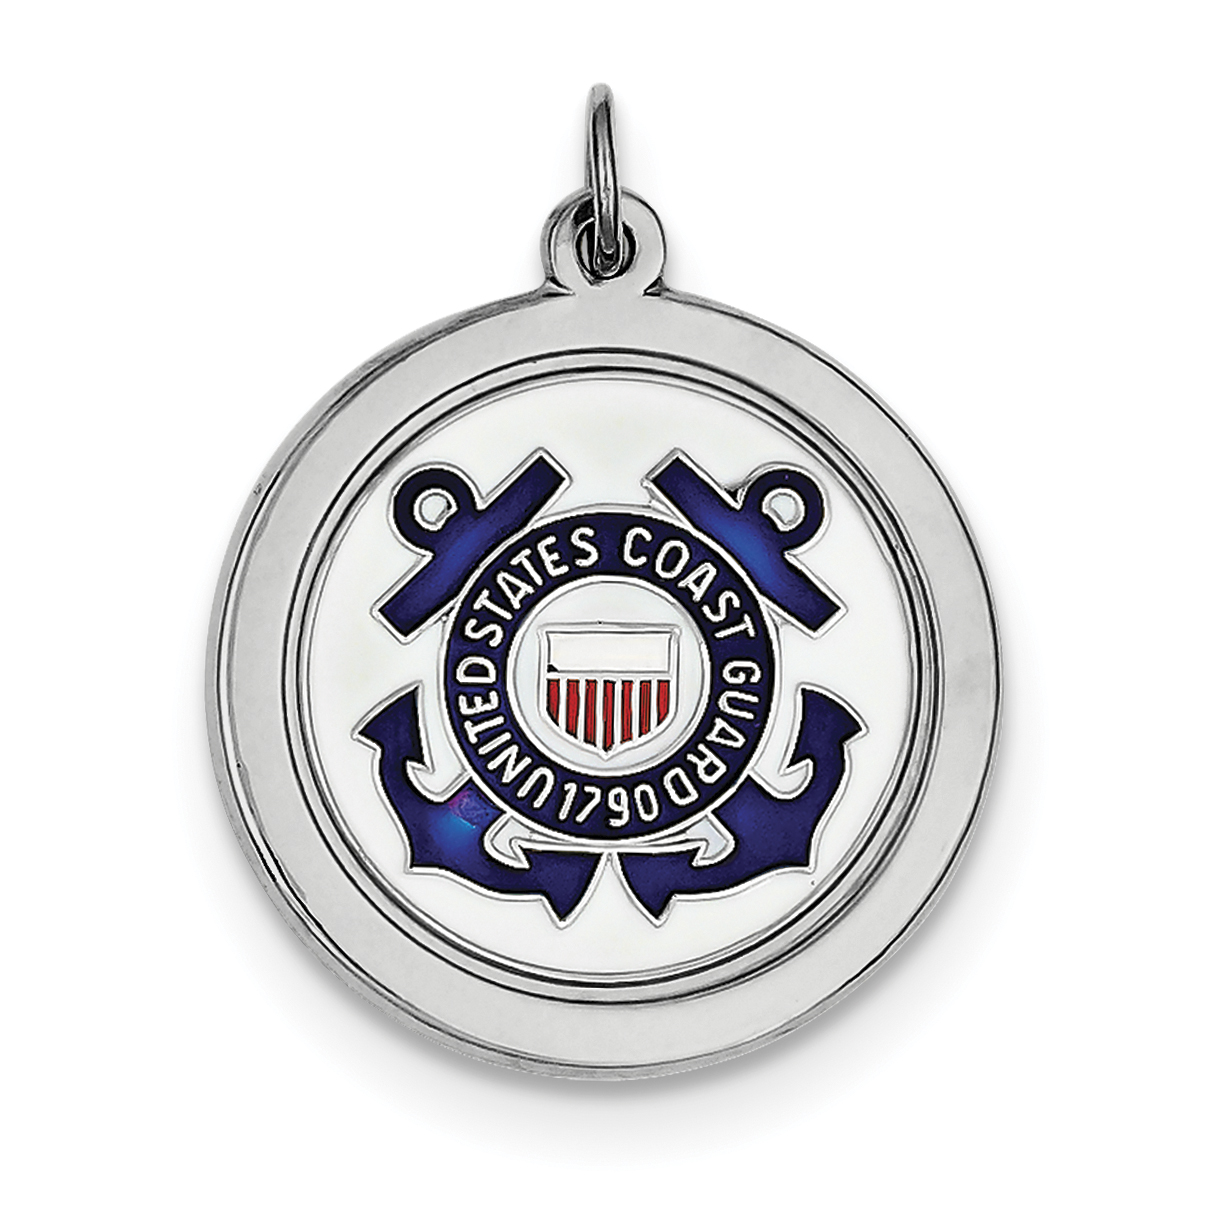 925 Sterling Silver Rhodium-Plated US Coast Guard Disc Pendant - image 2 de 2